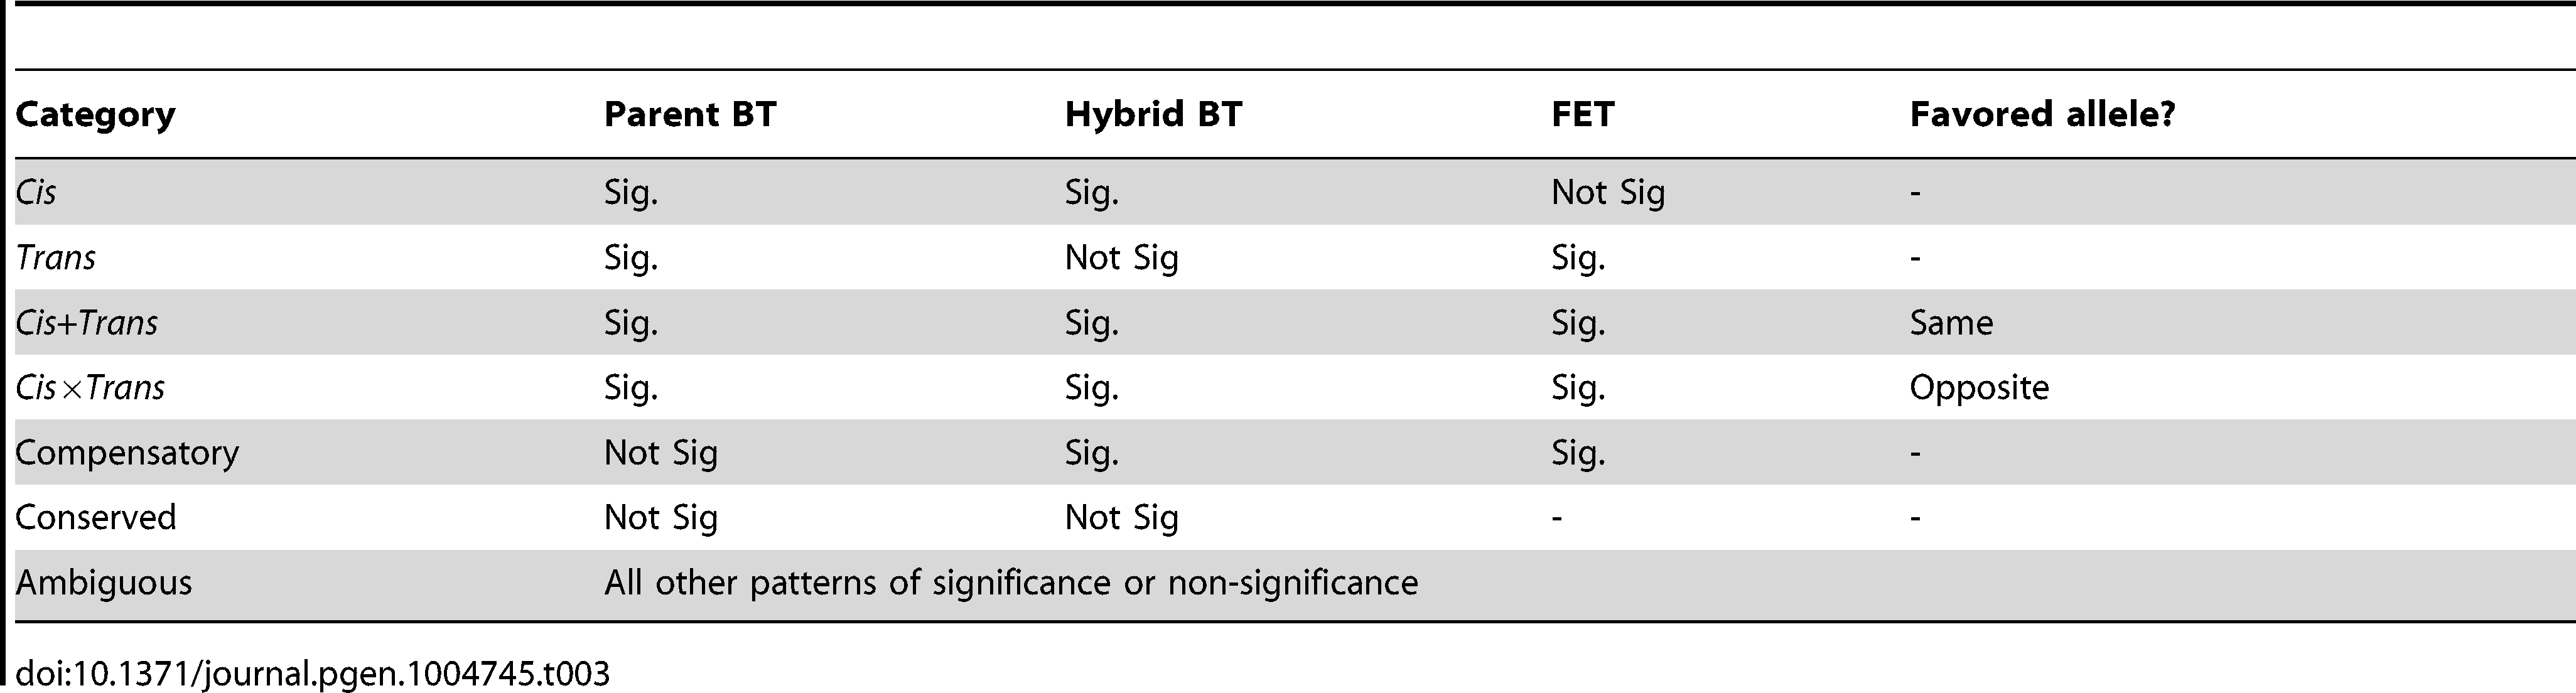 Regulatory category as defined by significant (Sig.) with FDR<0.005 or not significant (Not Sig.) binomial tests (BT) and Fisher's exact tests (FET).